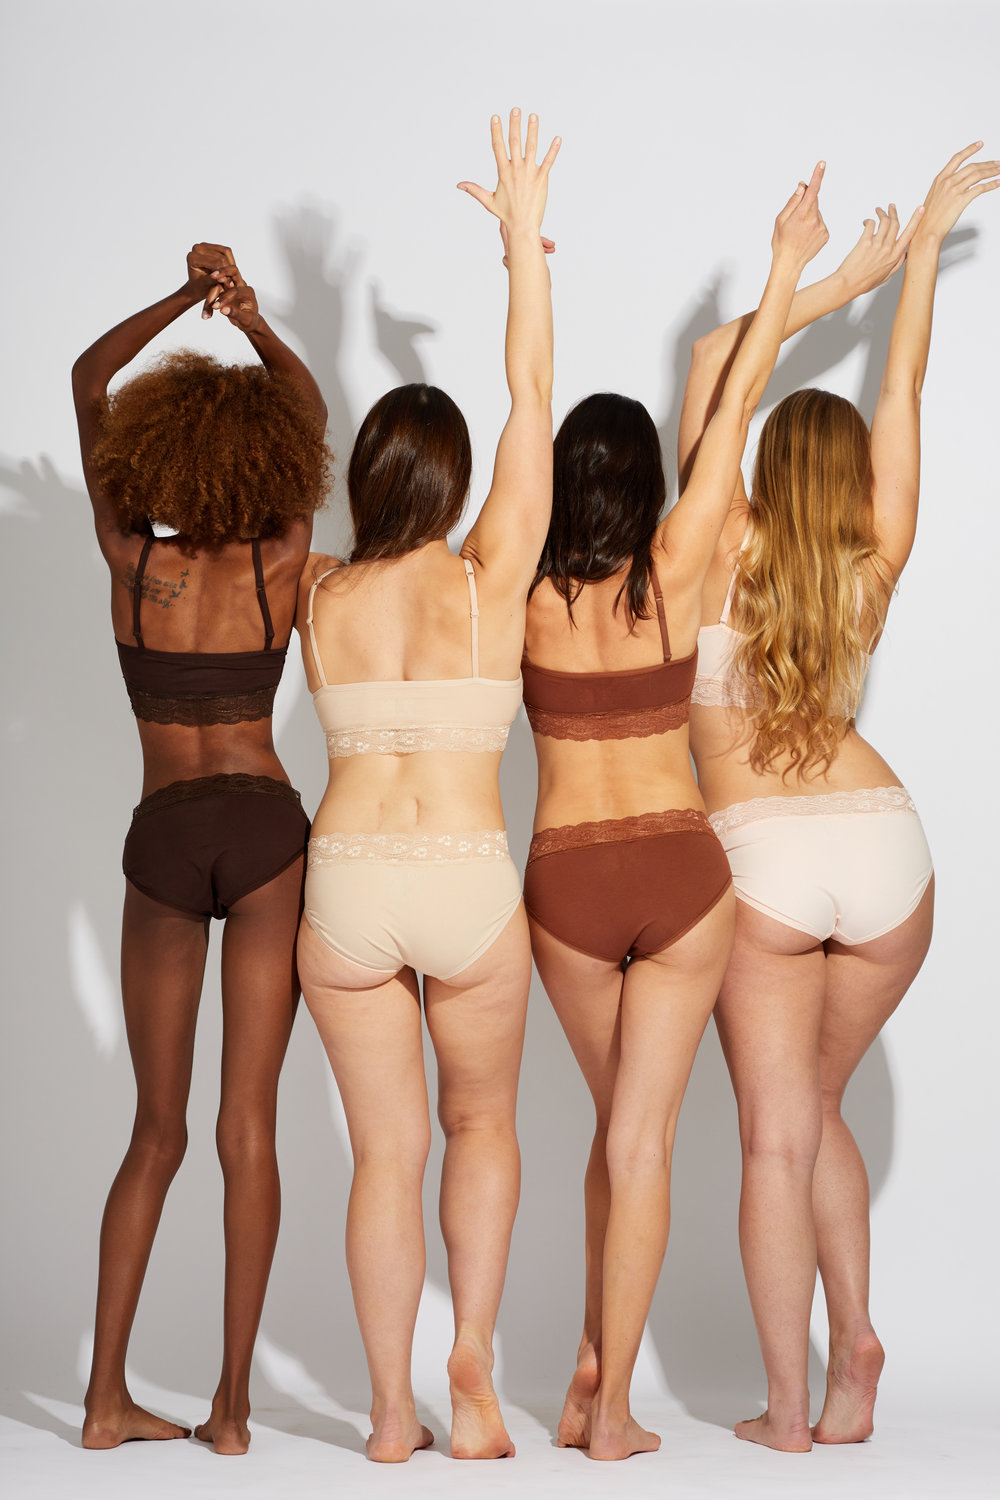 Setting the tone. - Introducing our new True Tones collection - bras & undie sets crafted out of 100% organic cotton, tinted with individuality. With six stylish cuts of undies and a curve-kissing, padded bra in each stunning shade, it's as close to au naturel as it gets without going commando. Each soft and flattering piece beautifully blends with your true hue, so all that stands out is you.